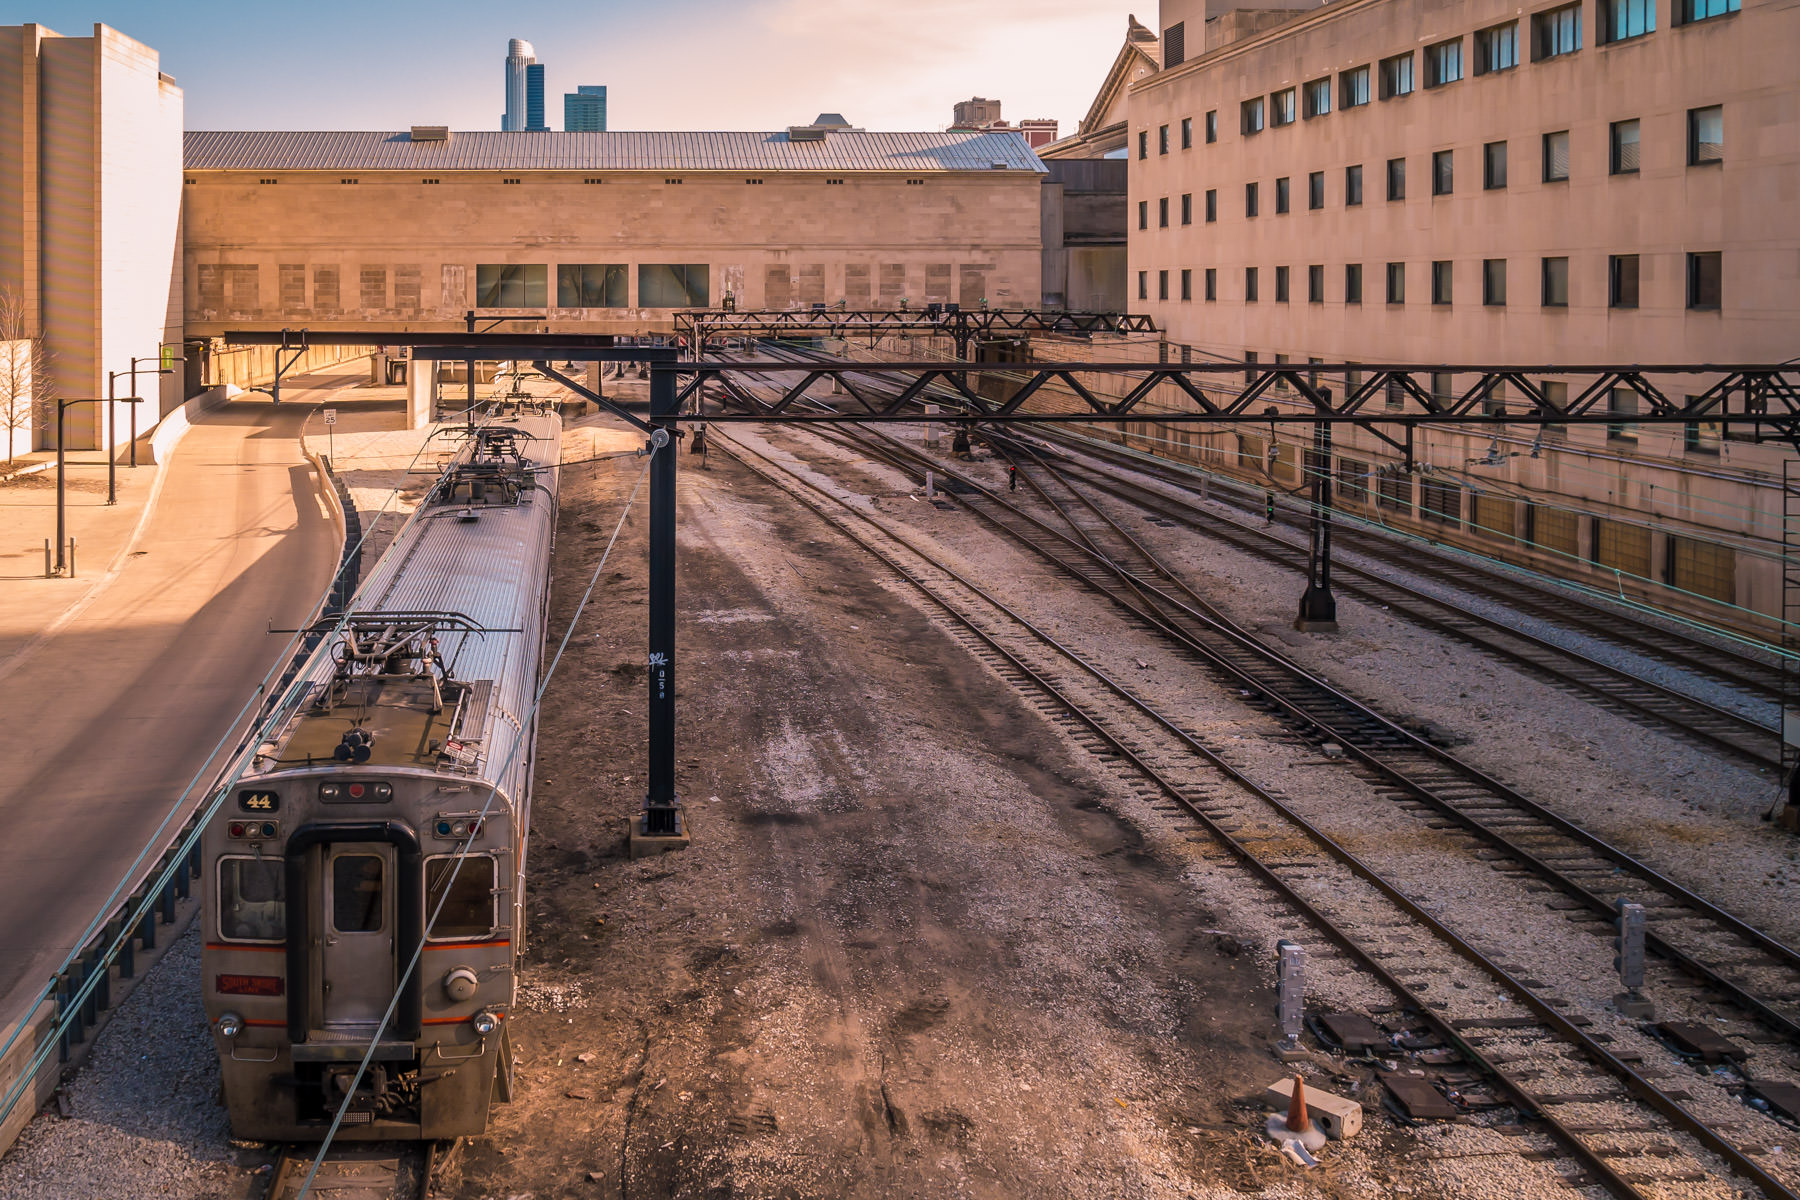 Metra Electric and South Shore Line tracks pass under the Art Institute of Chicago between Millennium Station and Van Buren Station.